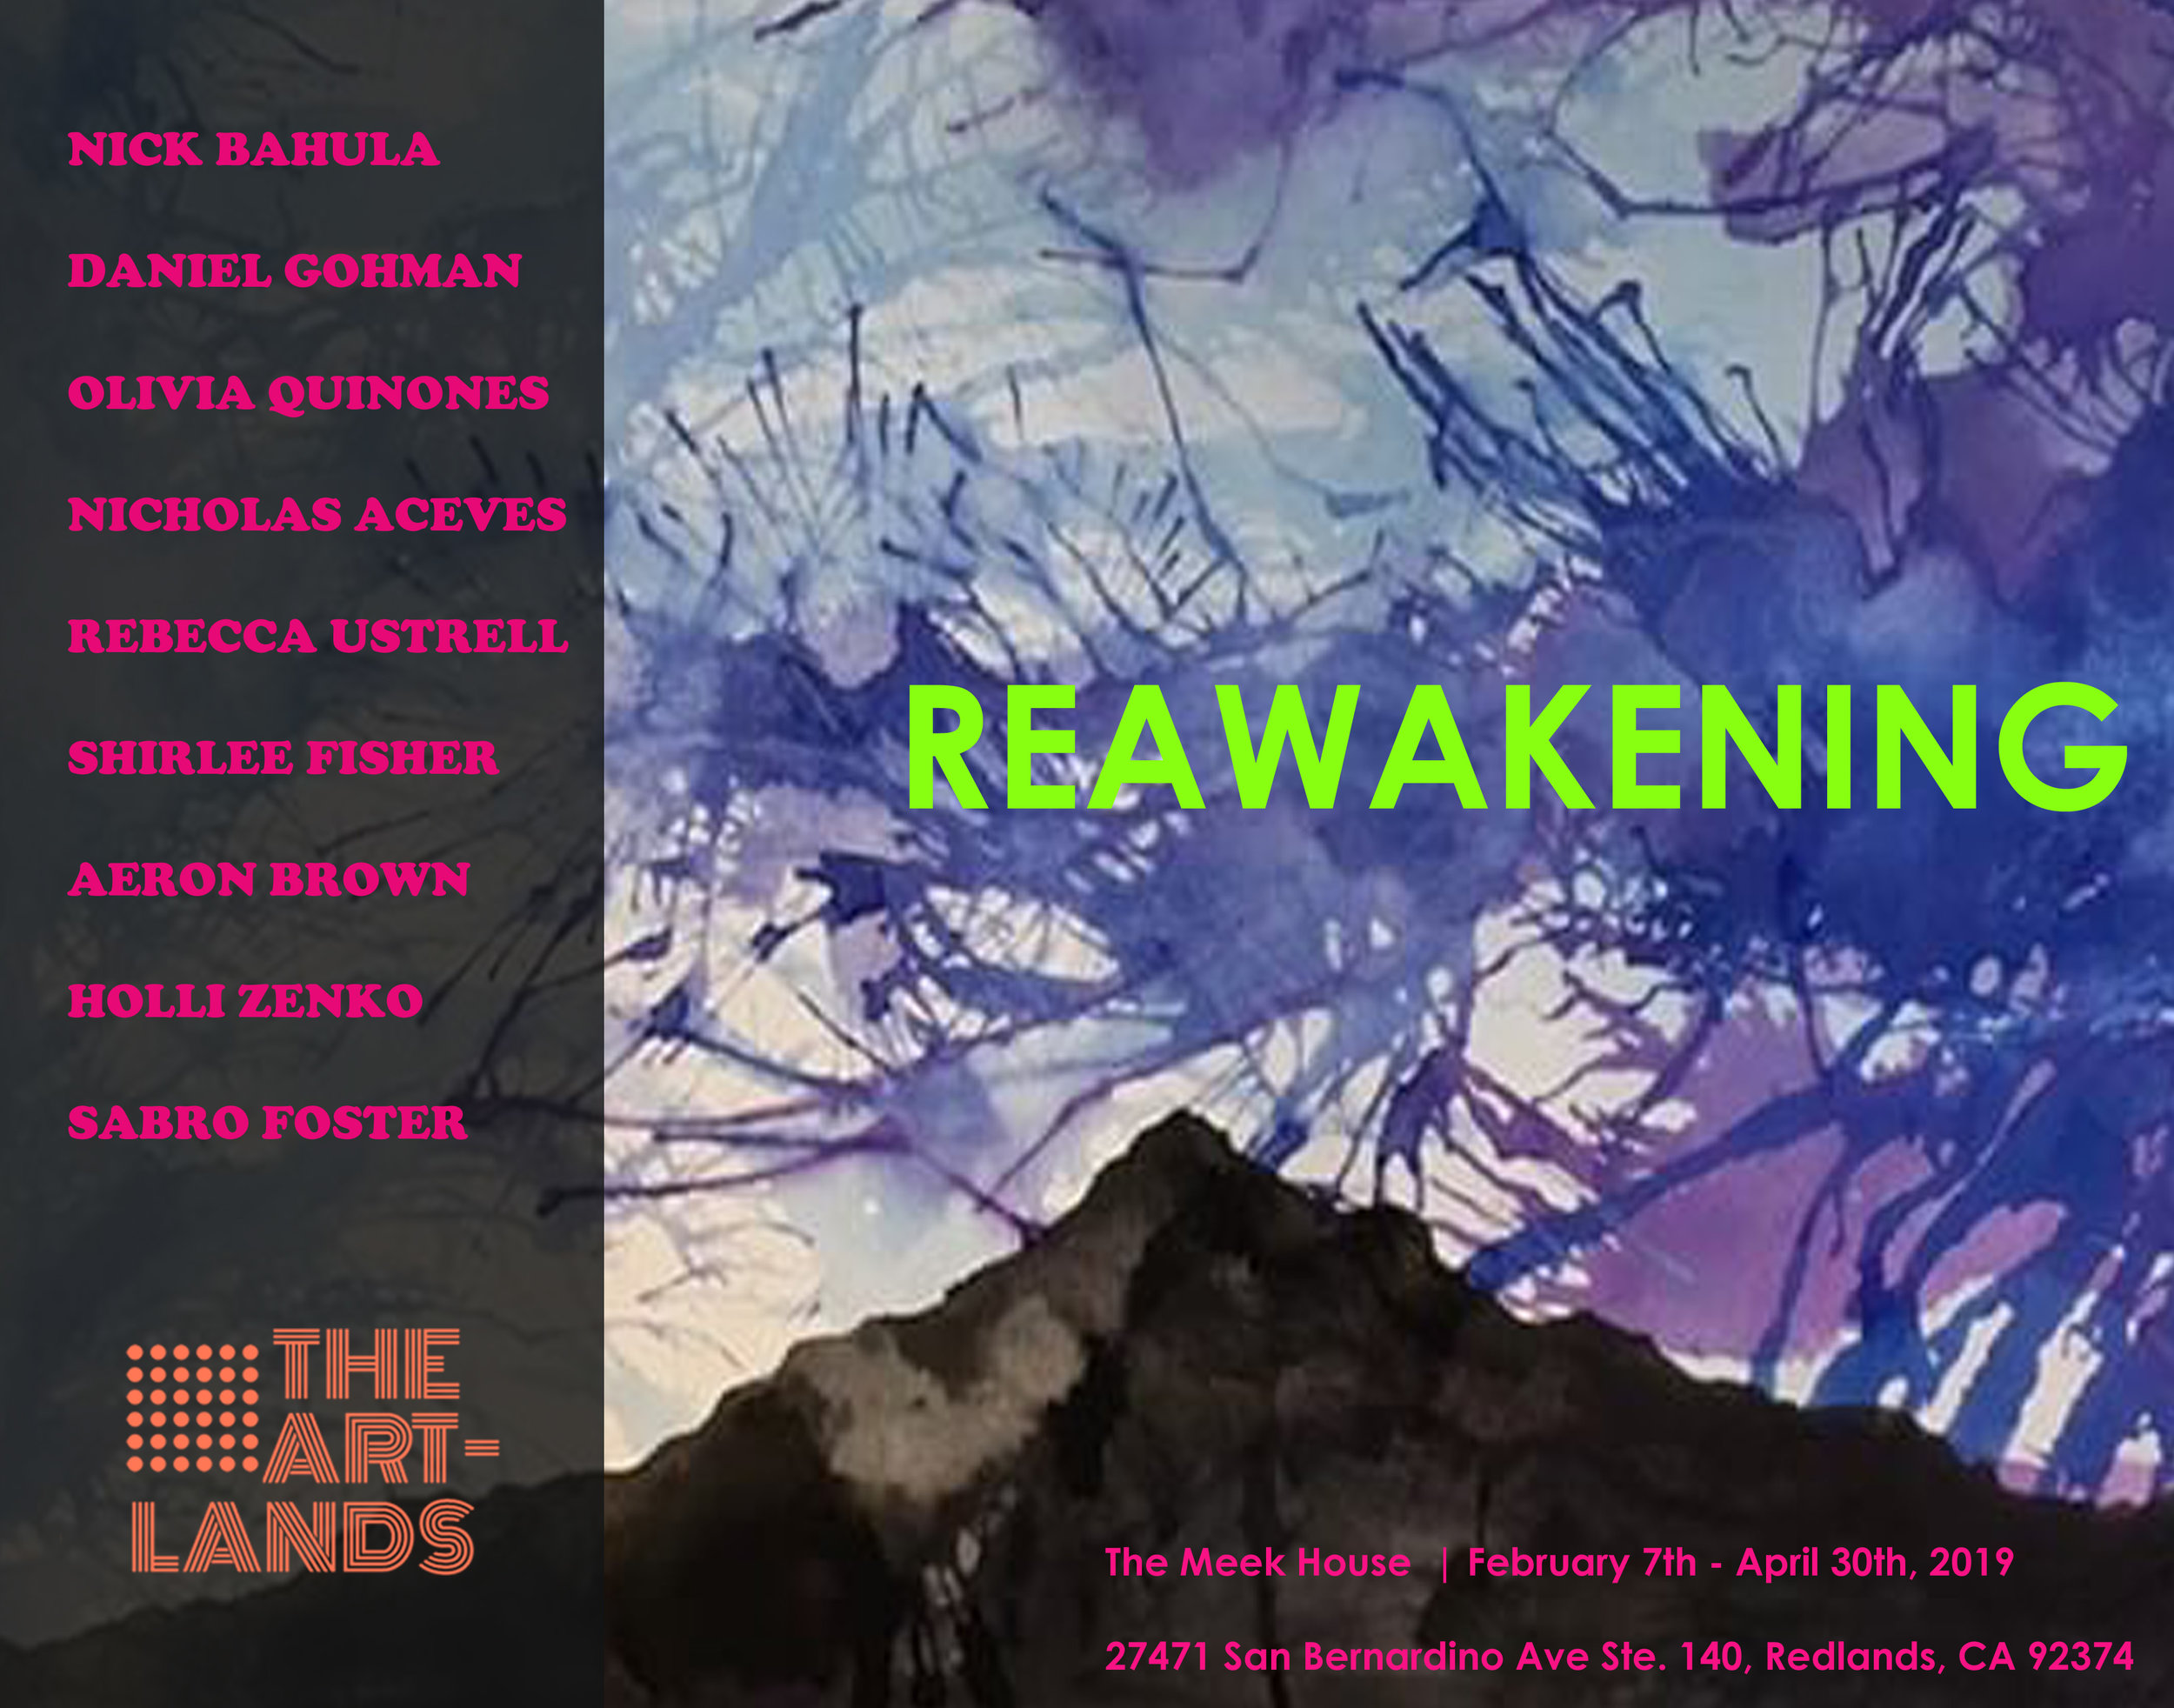 The Artlands | REAWAKENING - February 7 - April 30, 2019The Meek House27471 San Bernardino Ave. Suite #140, Redlands, CA 92374